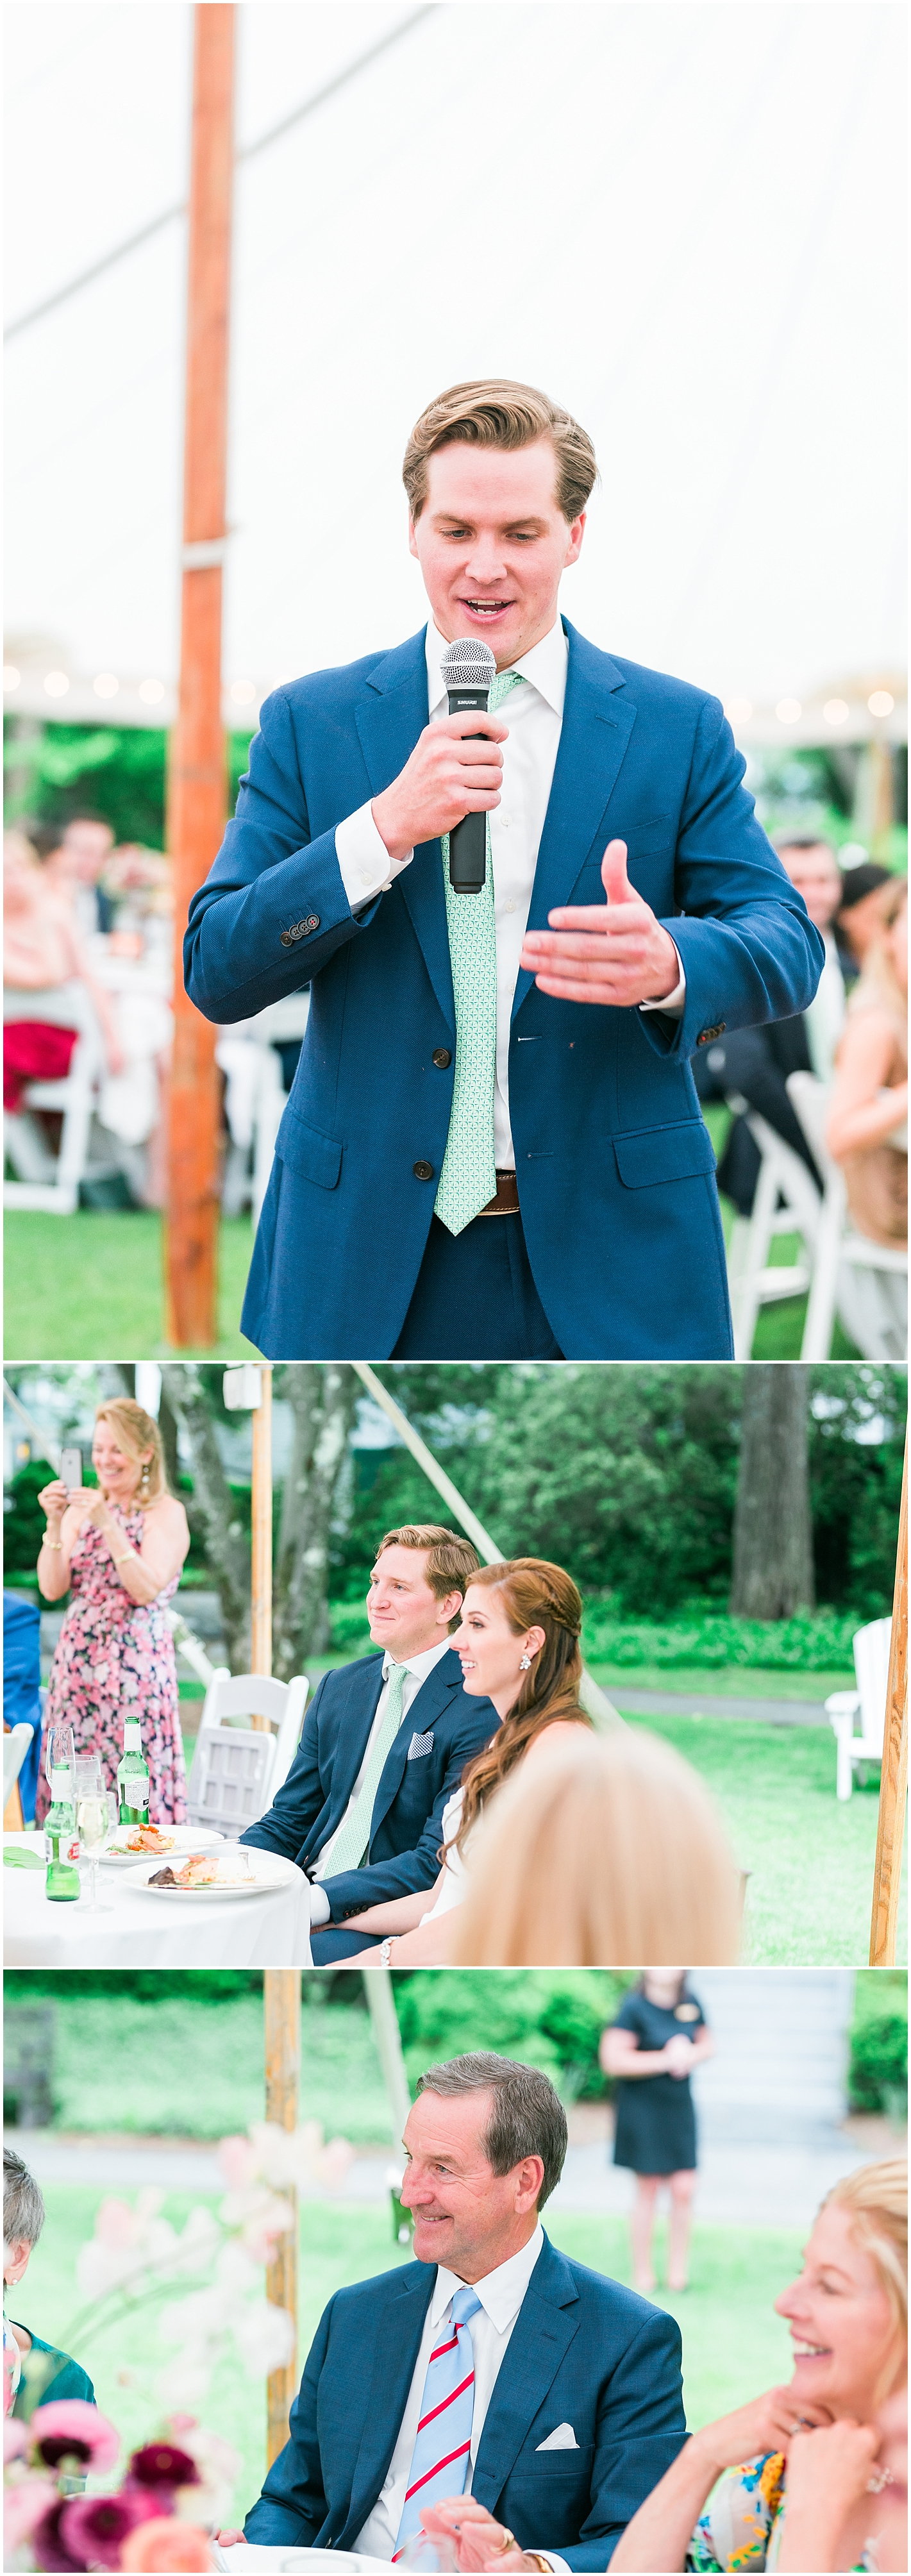 Brother best man speech Photos by Alyssa Parker Photography